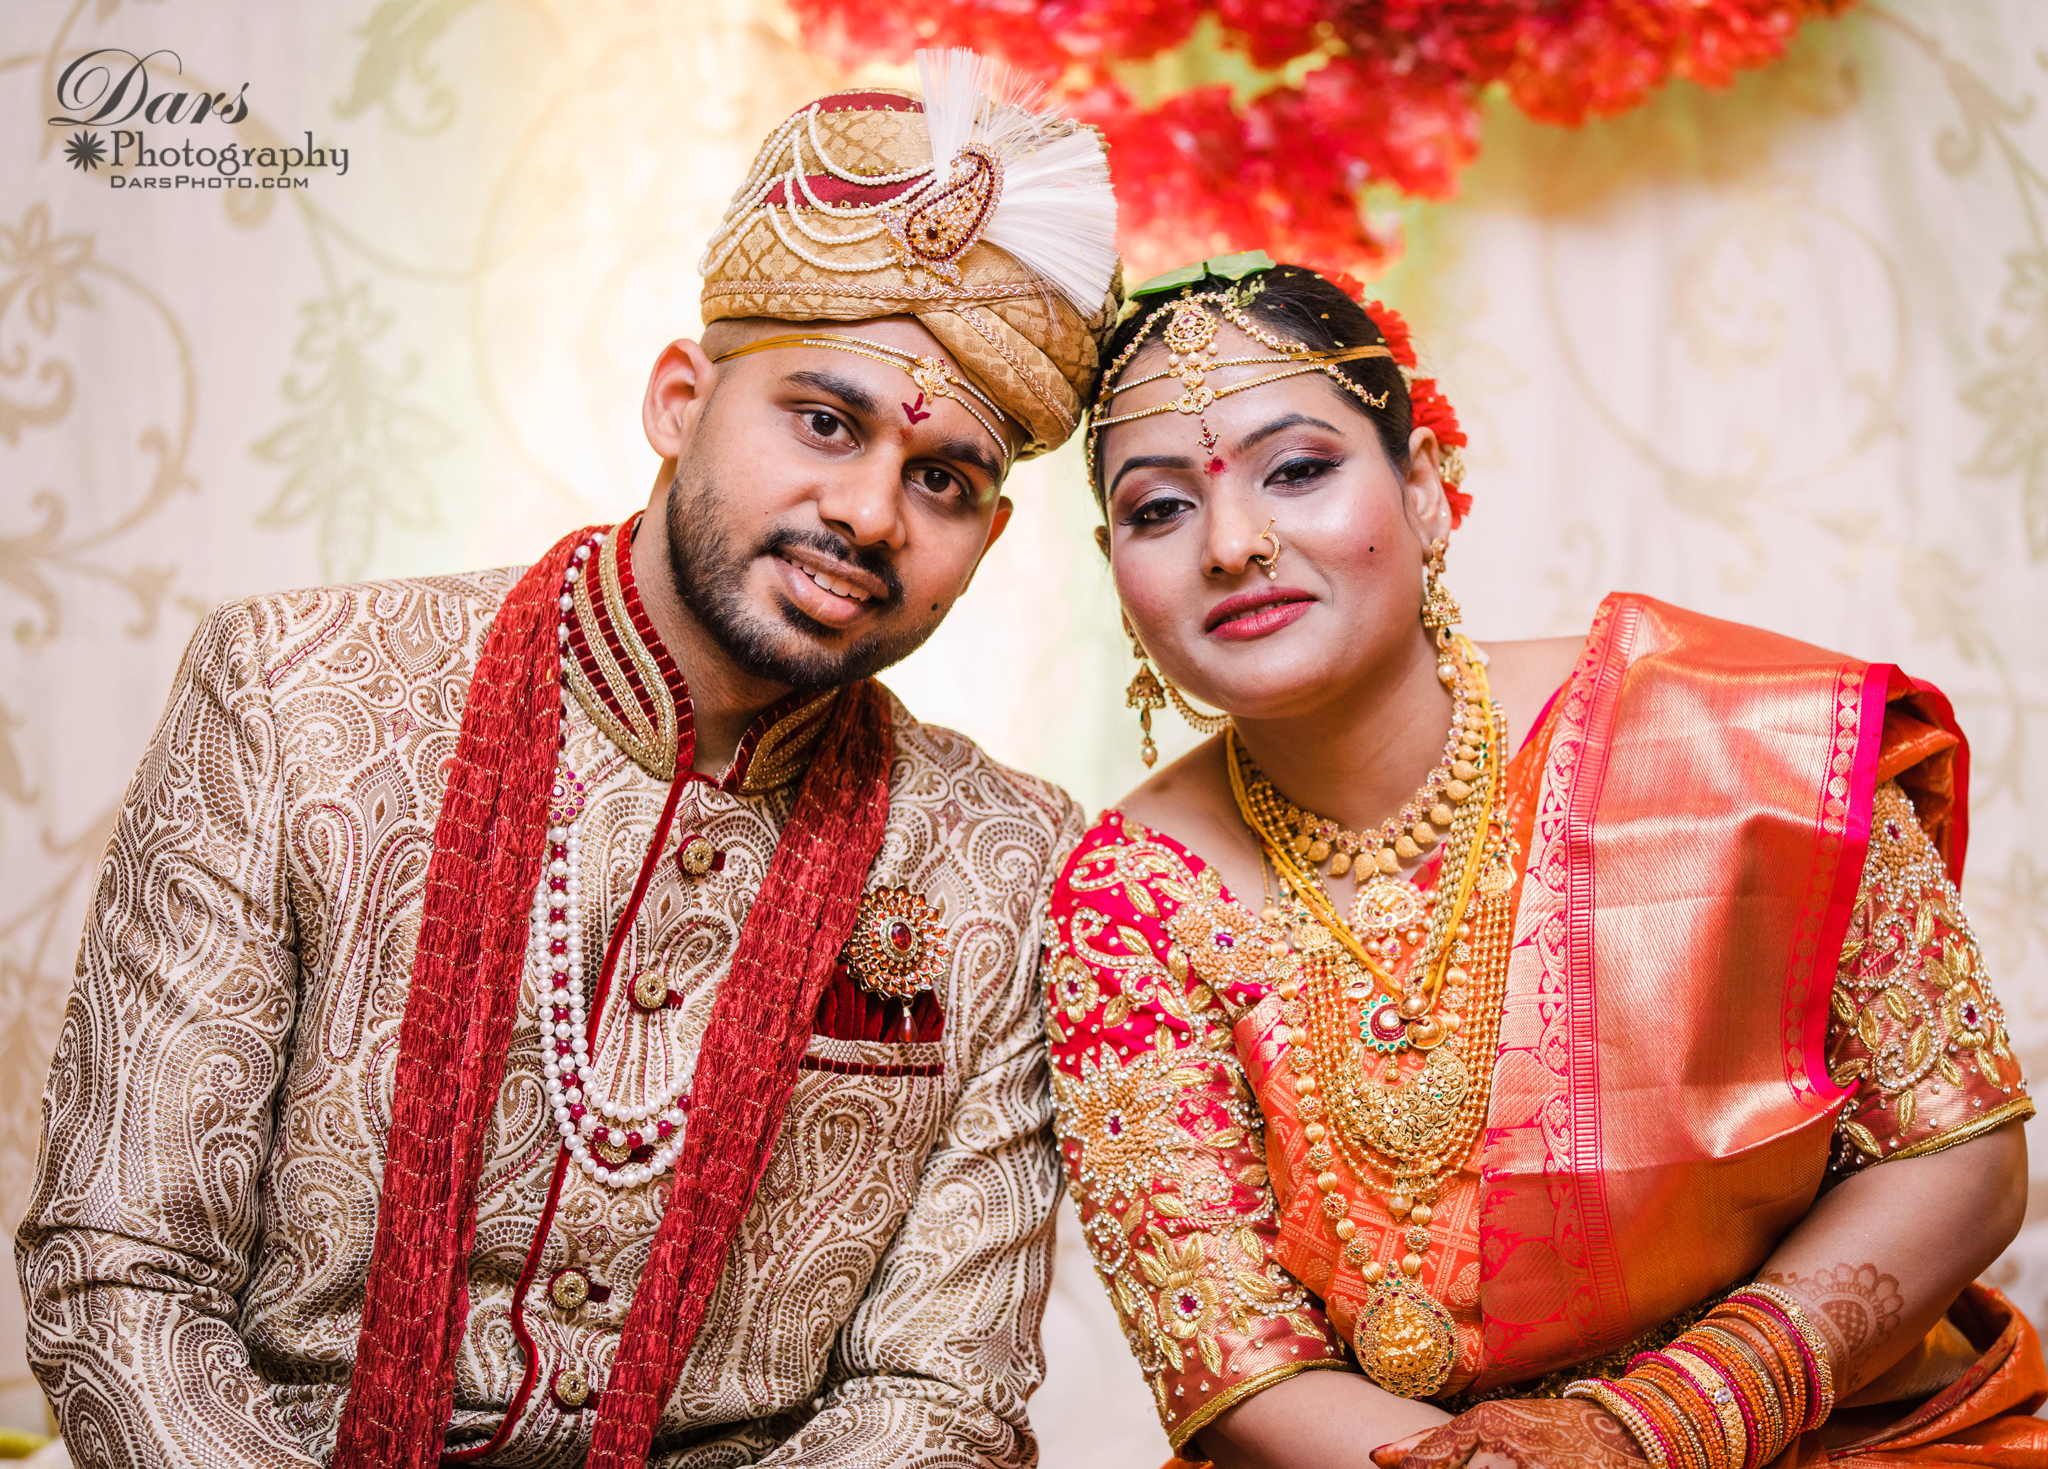 Chicago American And Indian Wedding Photographer DARS Photography 18